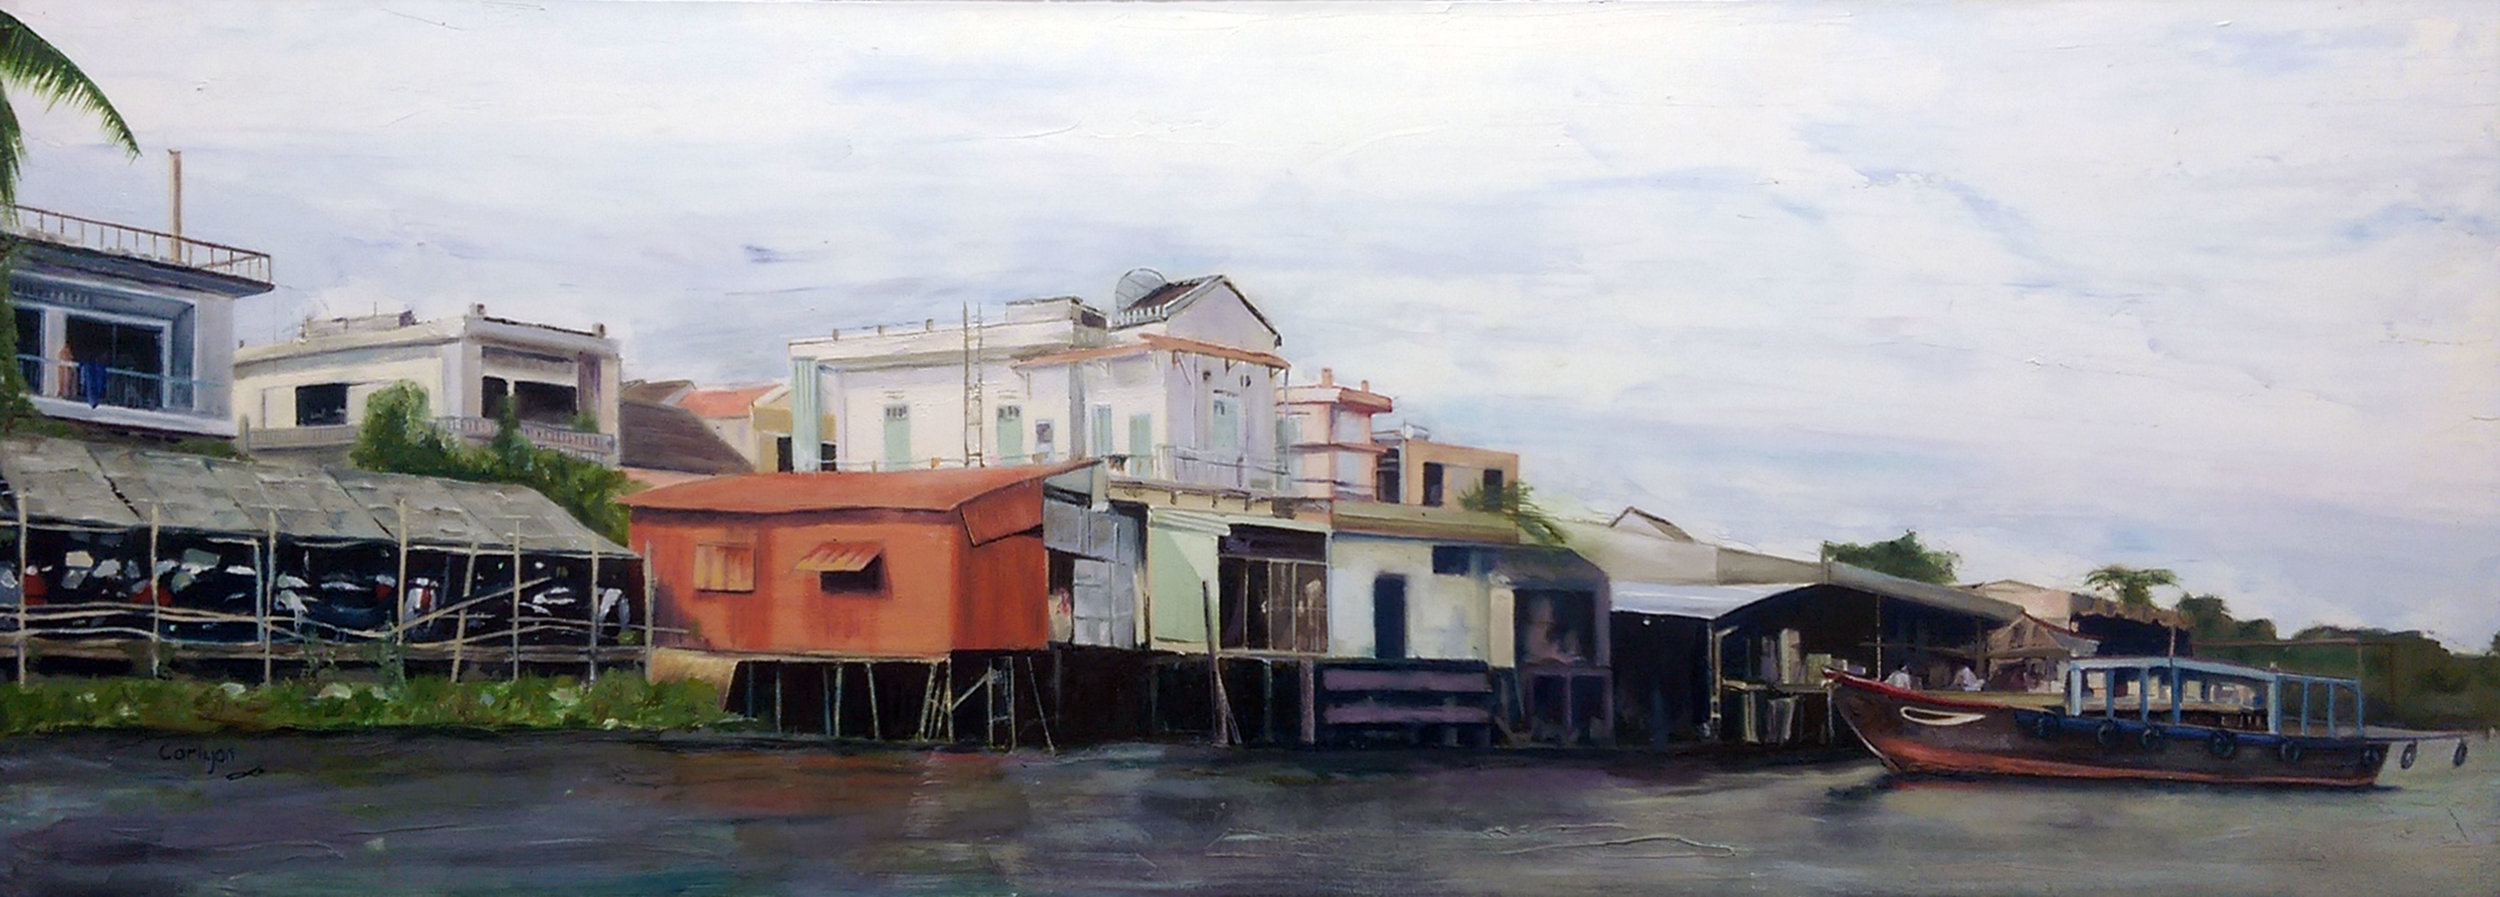 'Hoi An', Alan Smith, Oil, 80 x 35 4 cm